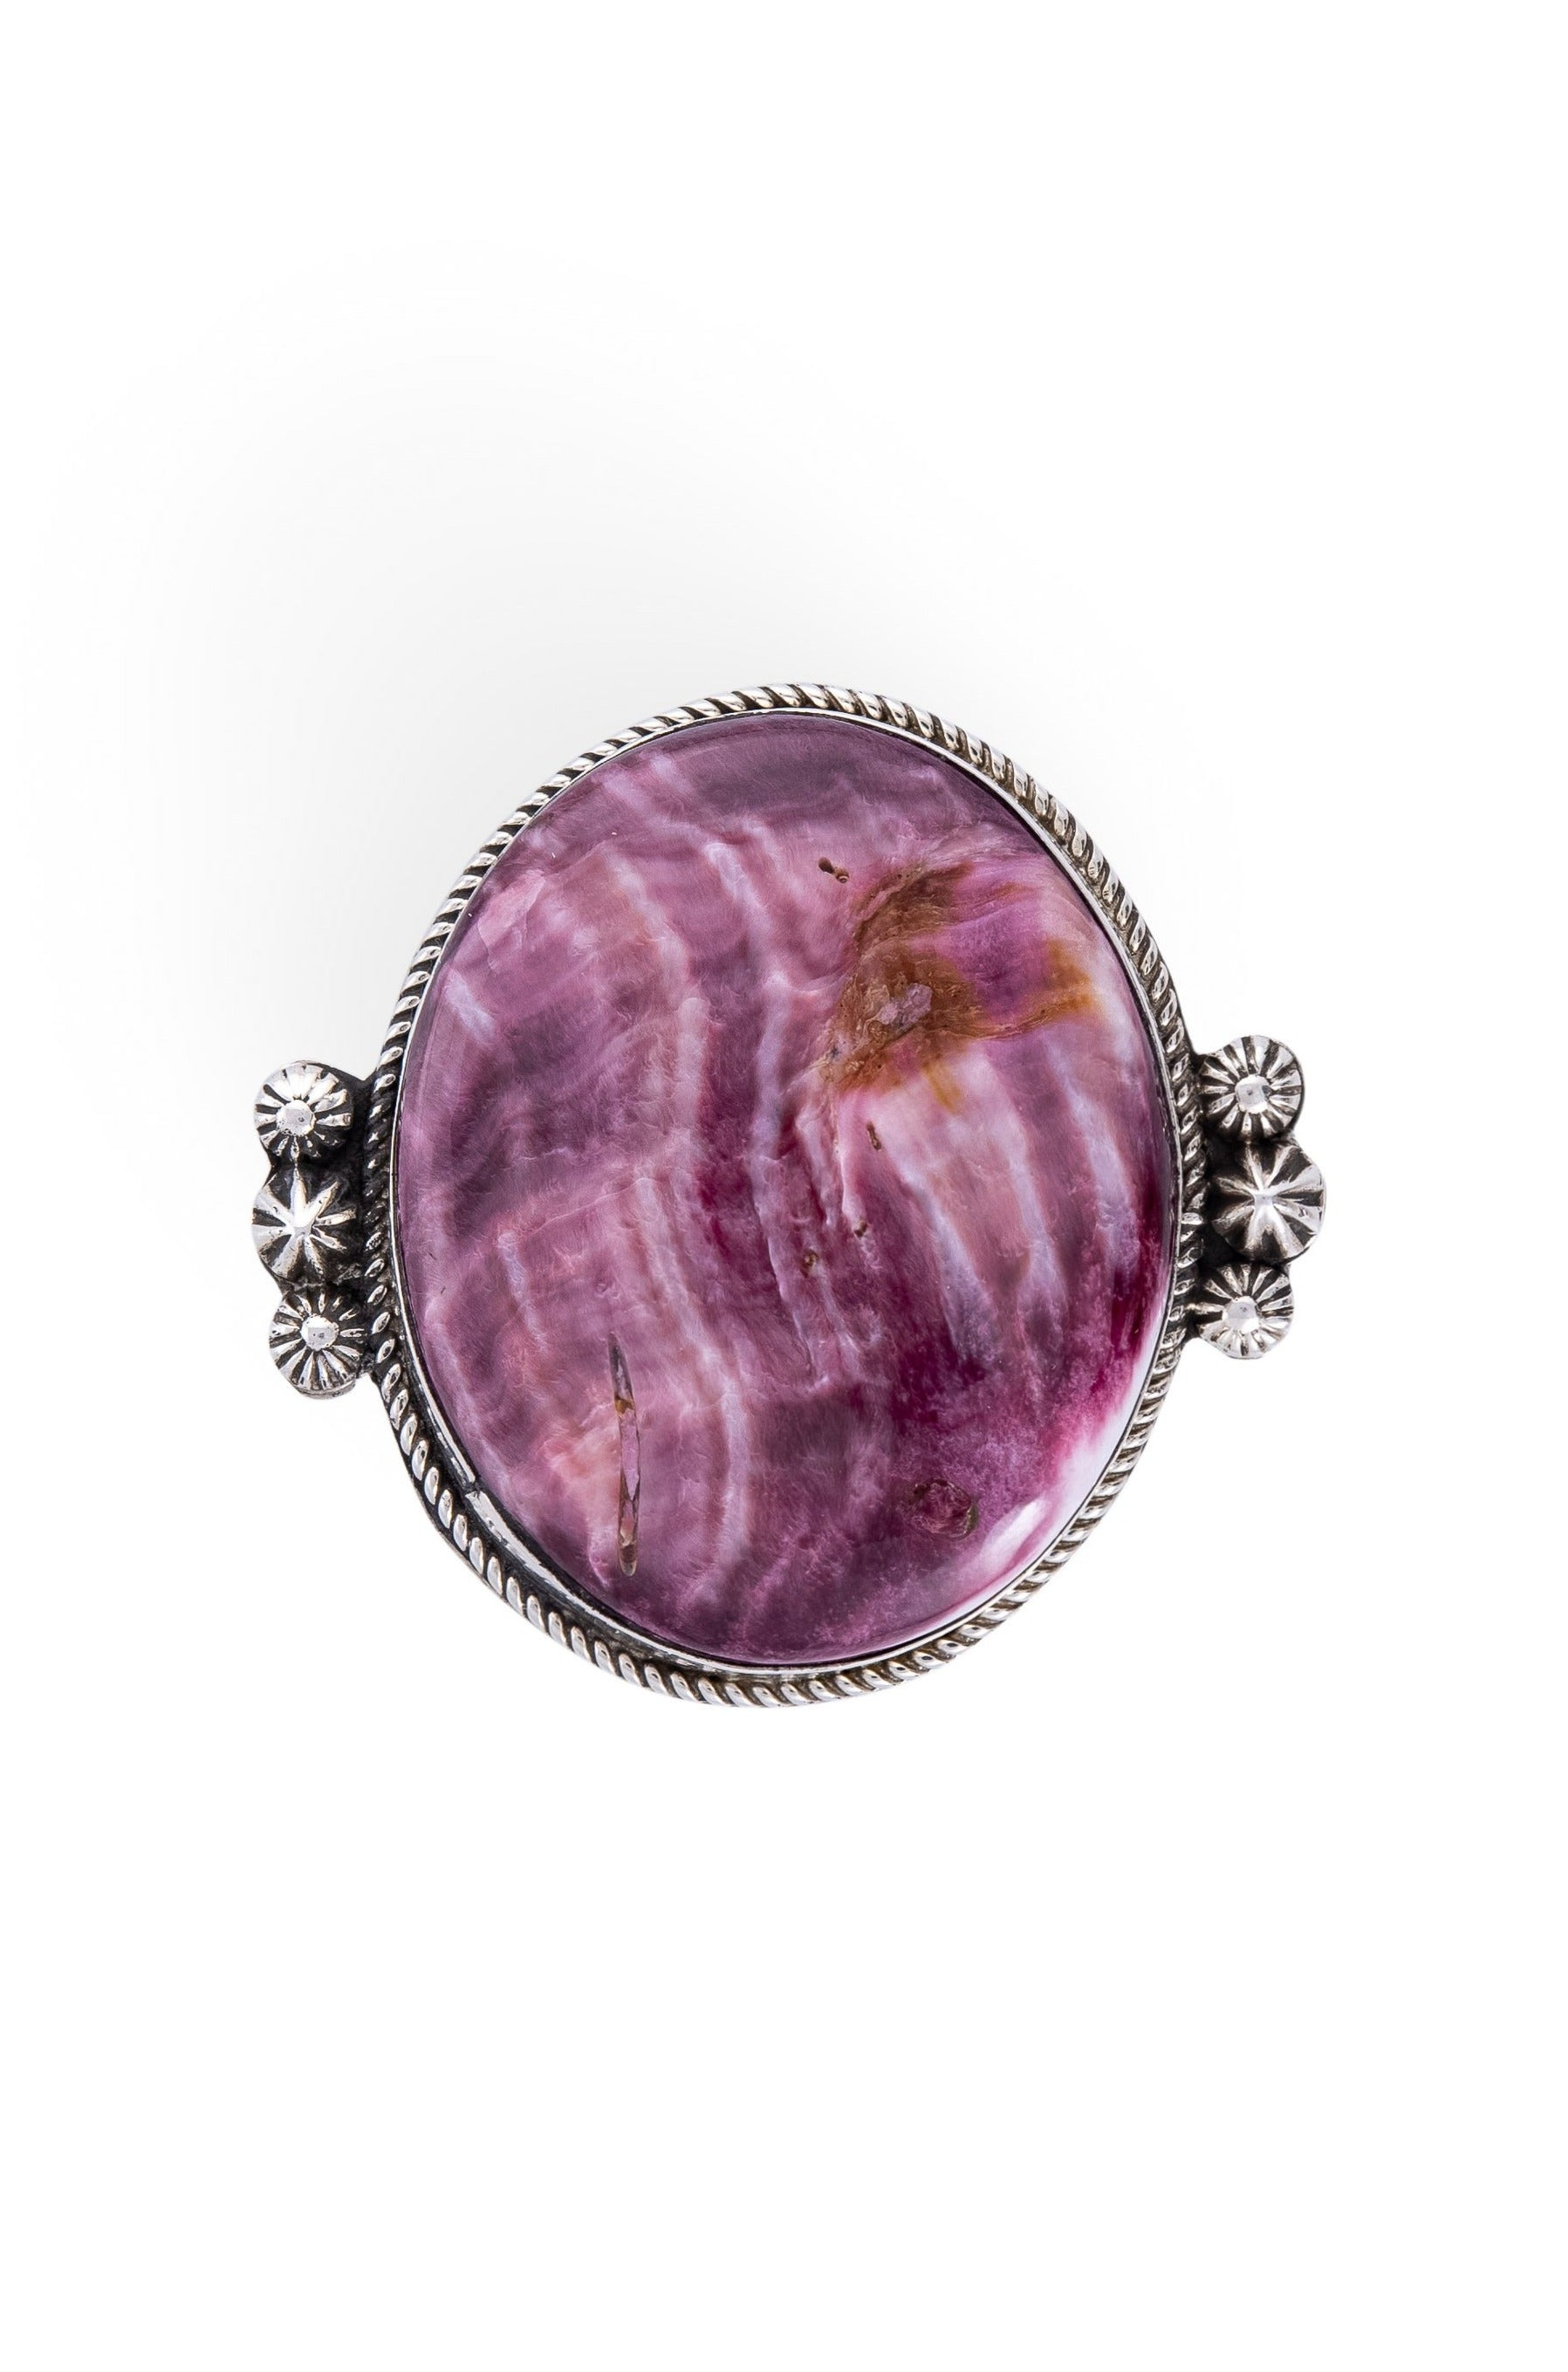 Ring, Purple Spiny Oyster, Single Stone, Hallmark, 667